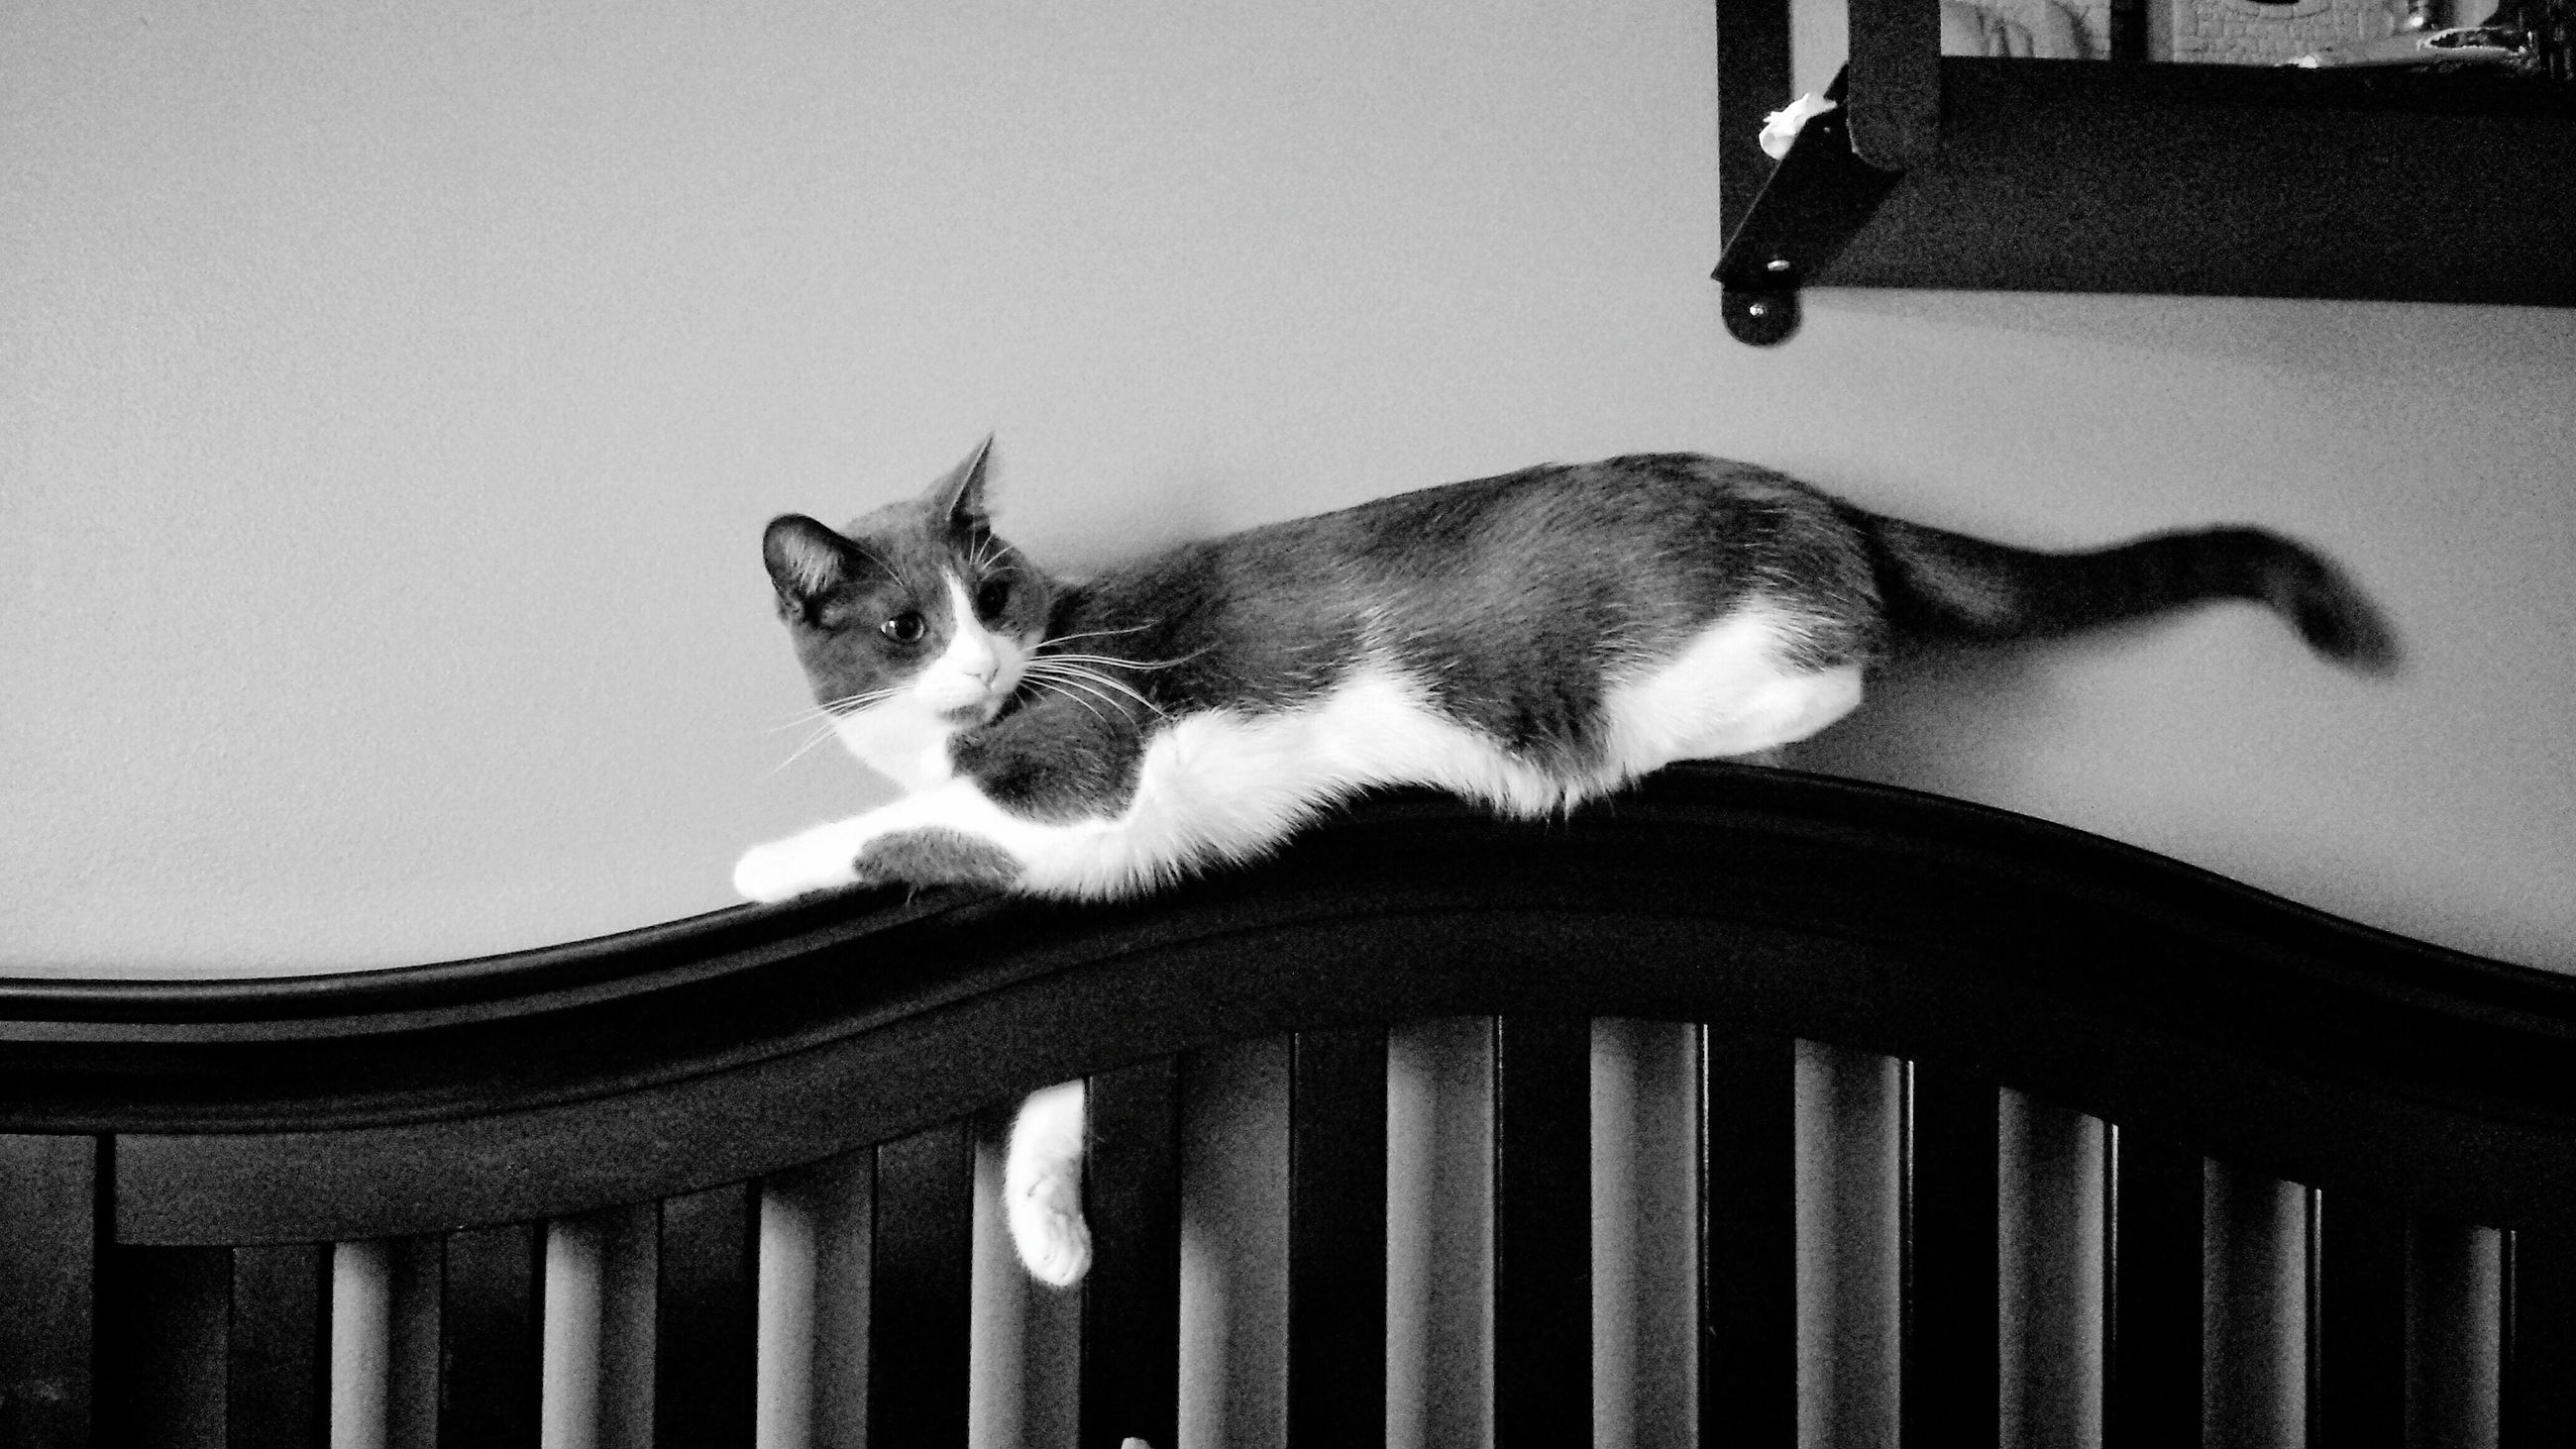 domestic cat, cat, pets, one animal, animal themes, domestic animals, feline, indoors, mammal, relaxation, whisker, home interior, resting, no people, lying down, looking at camera, portrait, high angle view, home, close-up